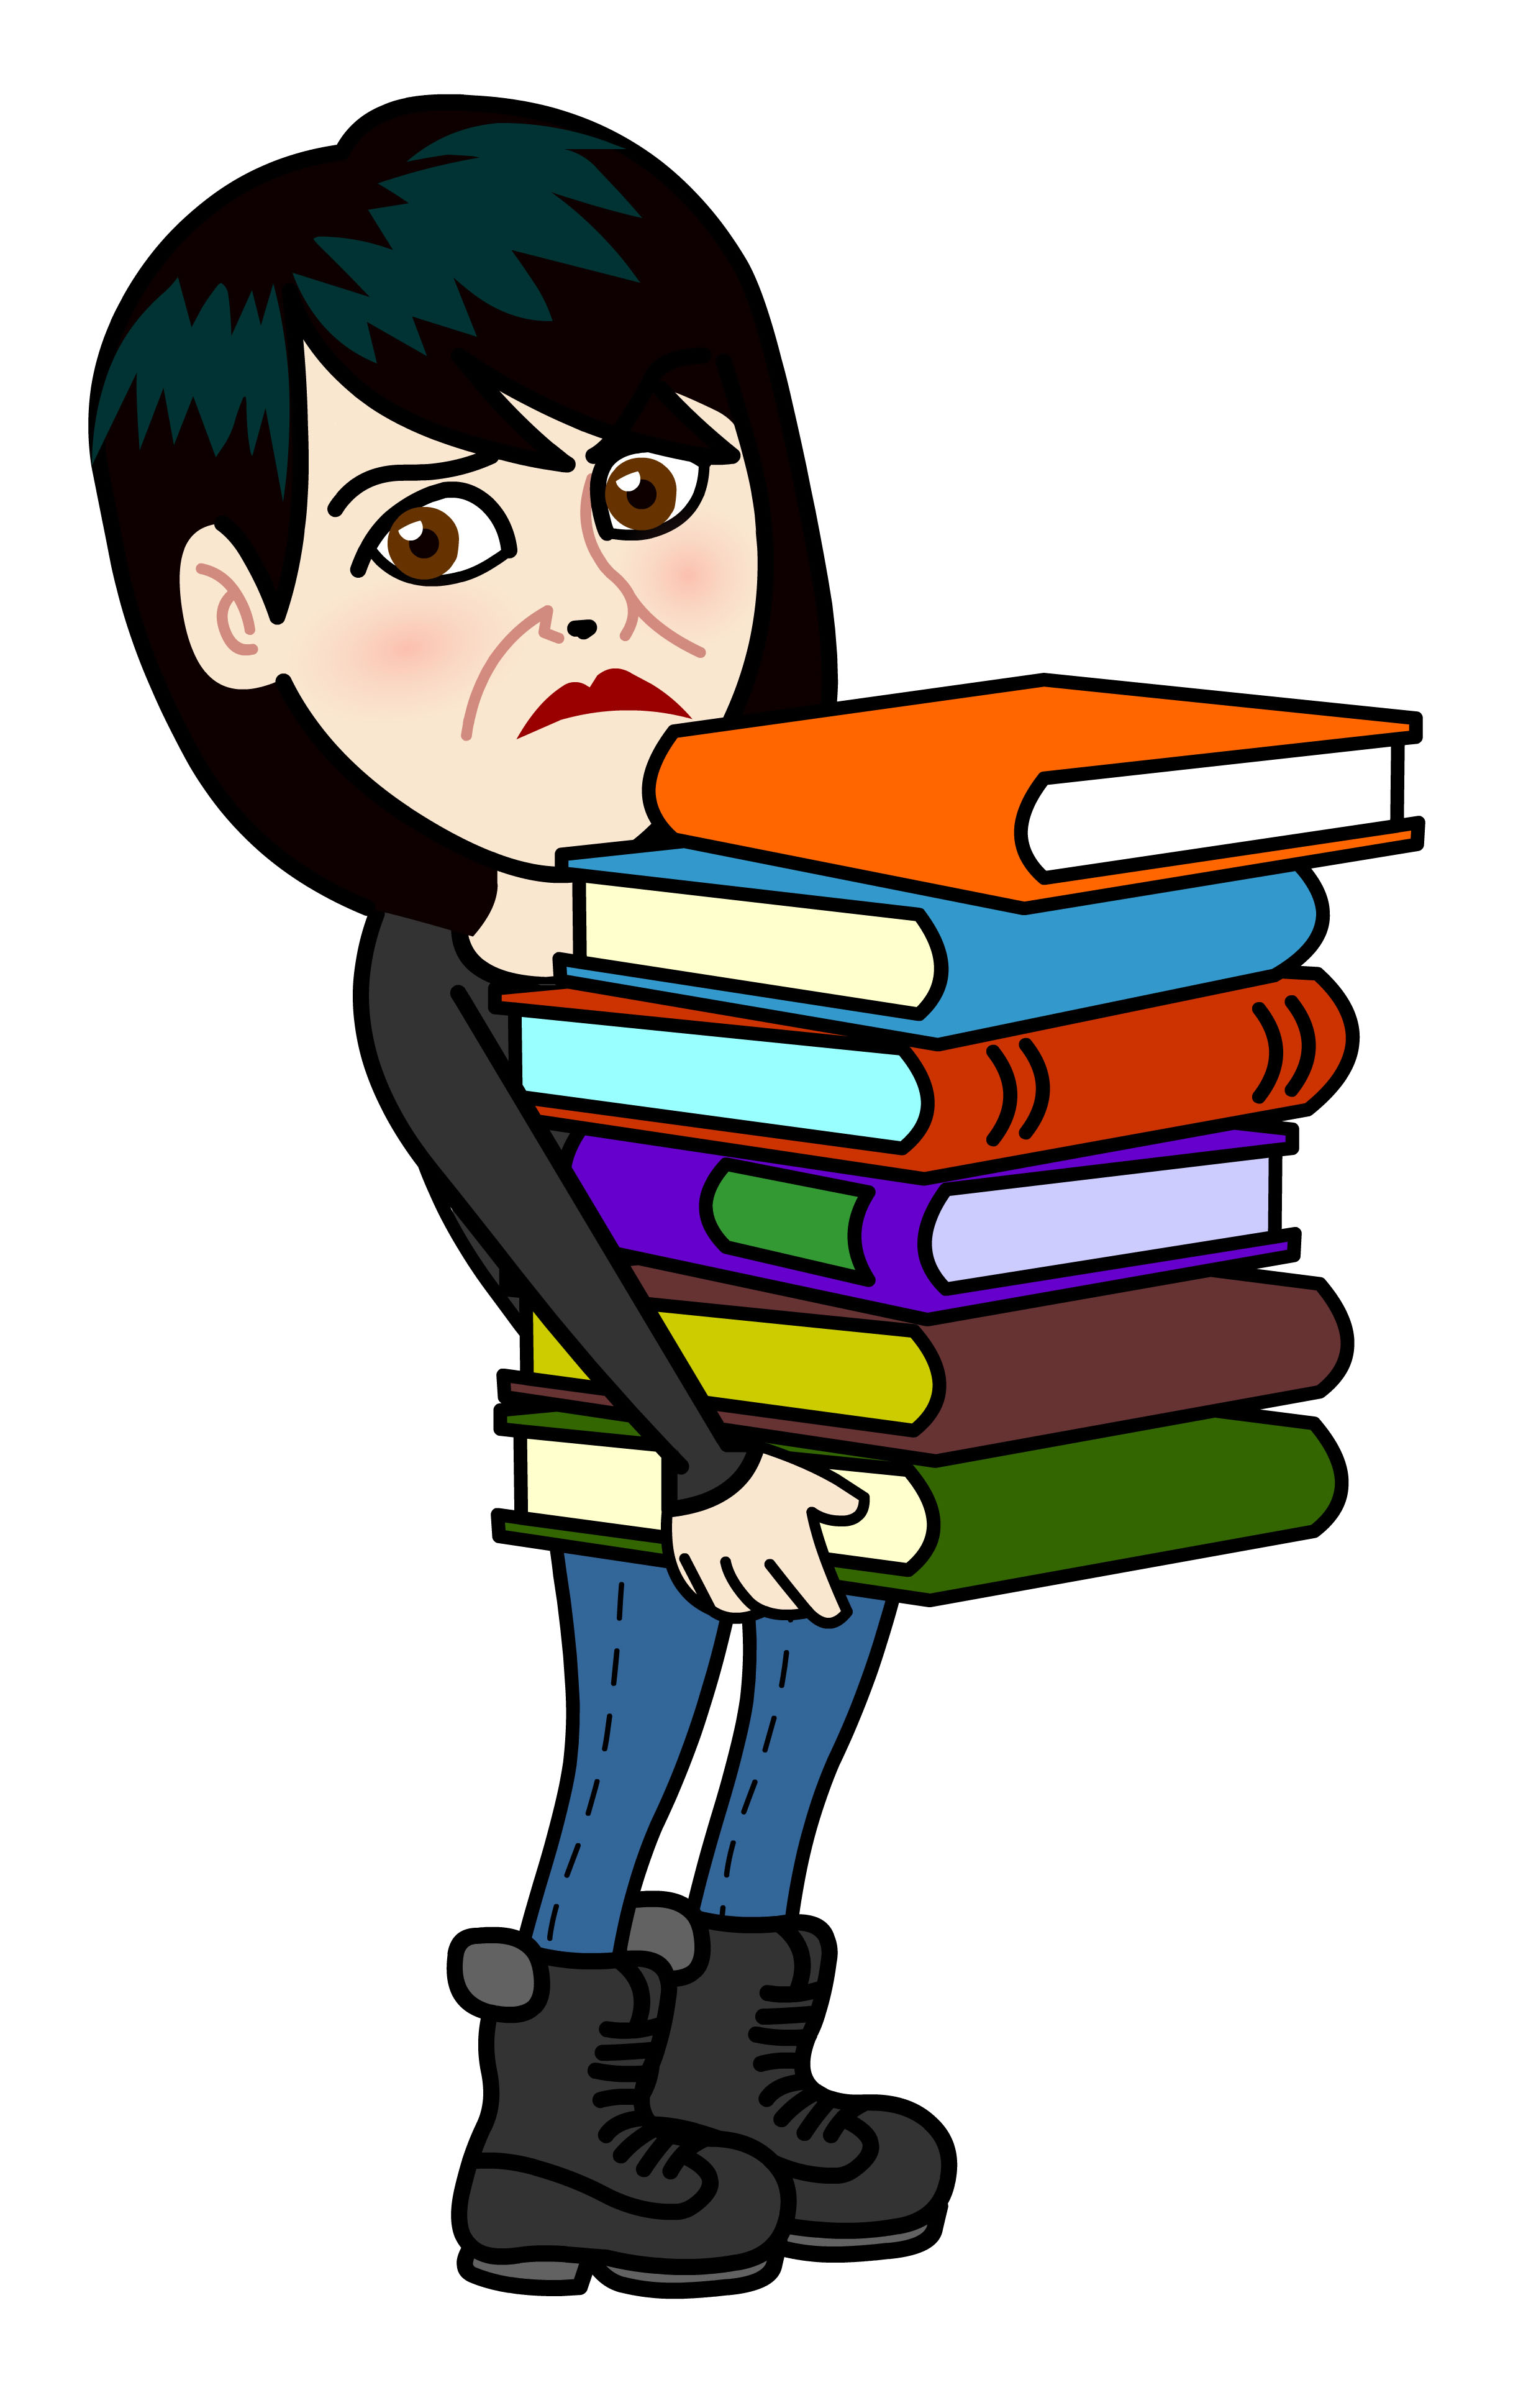 Ruth with books